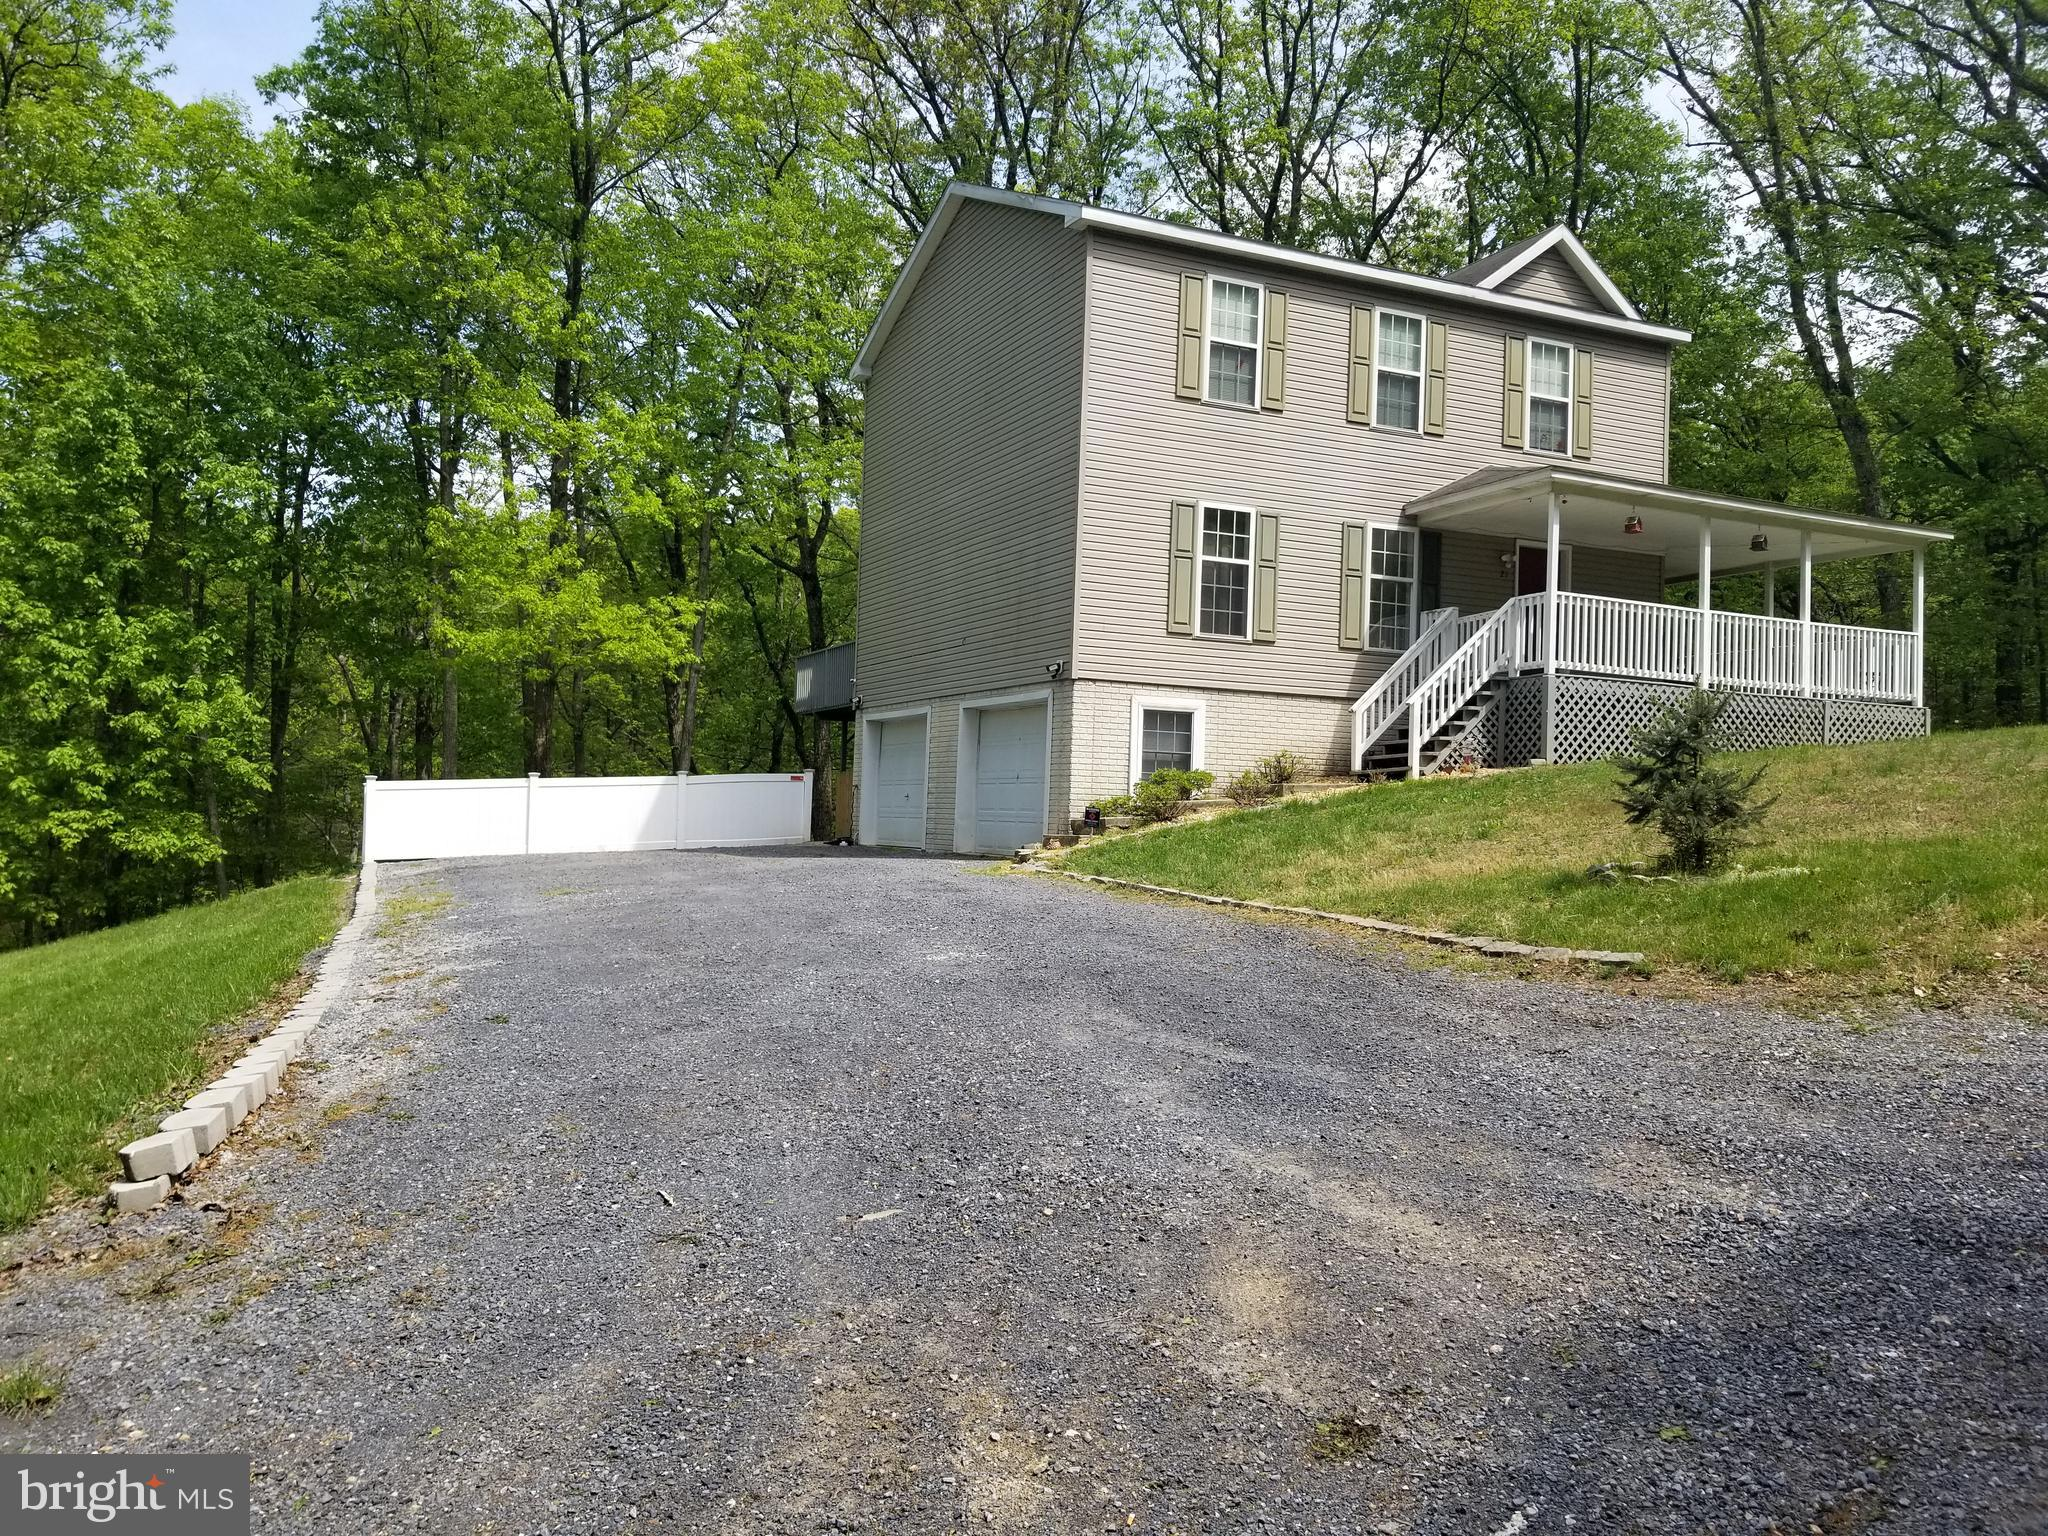 21 HEAVENS TREE TRAIL, STAR TANNERY, VA 22654